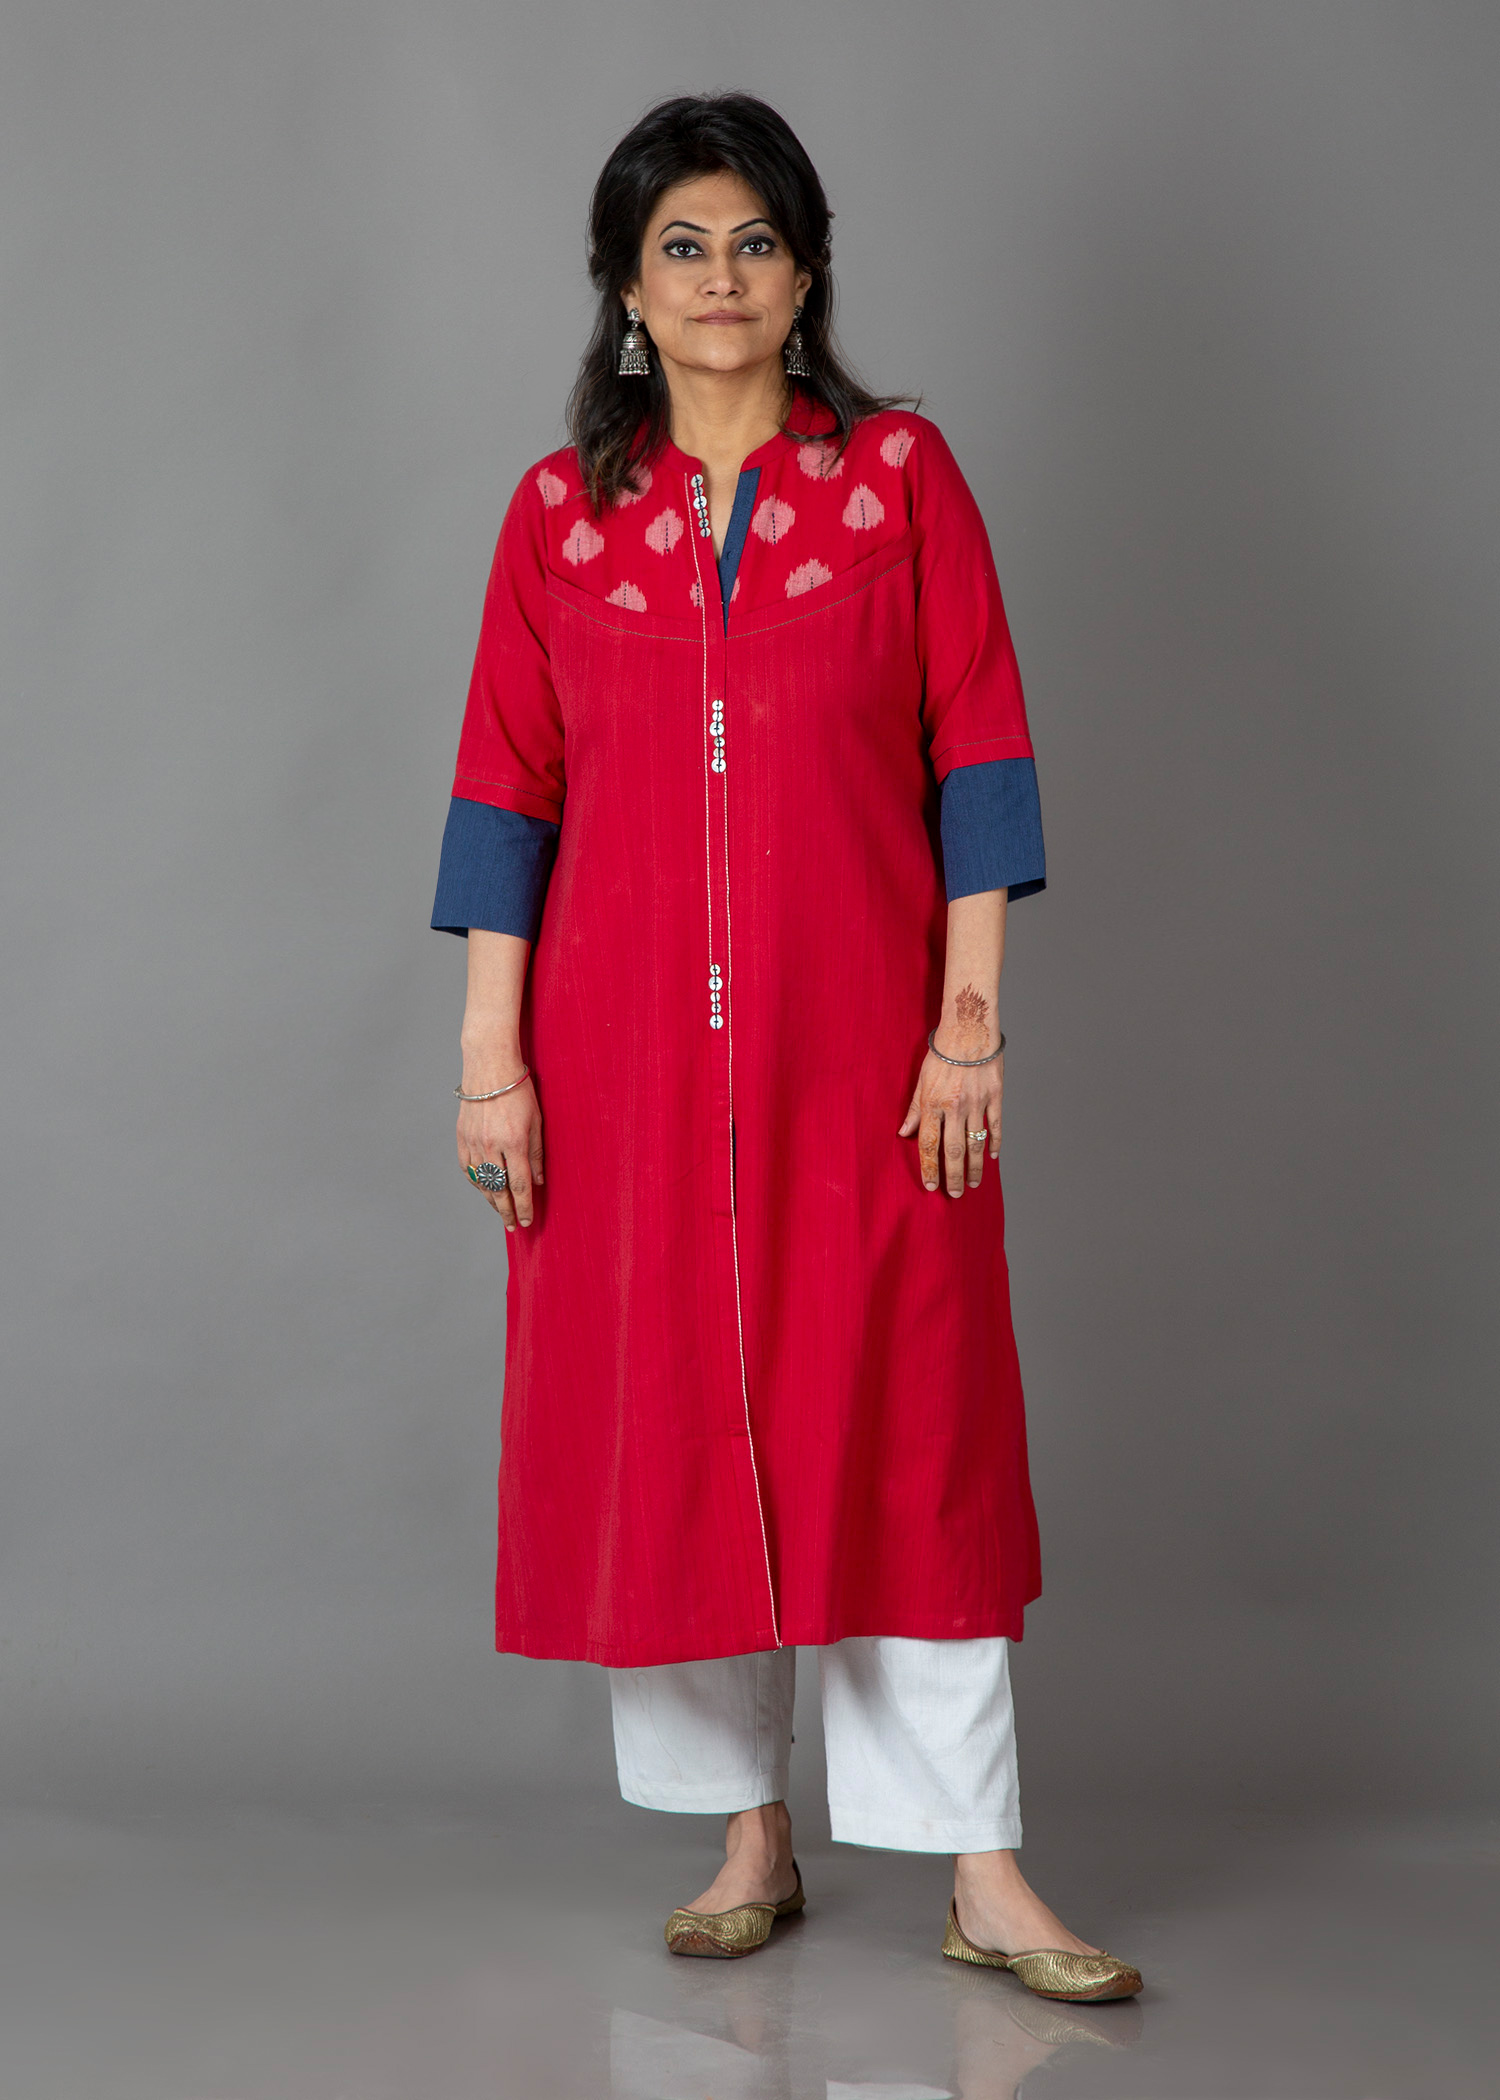 Watermelon Red Handwoven Cotton & Ikat Kurta